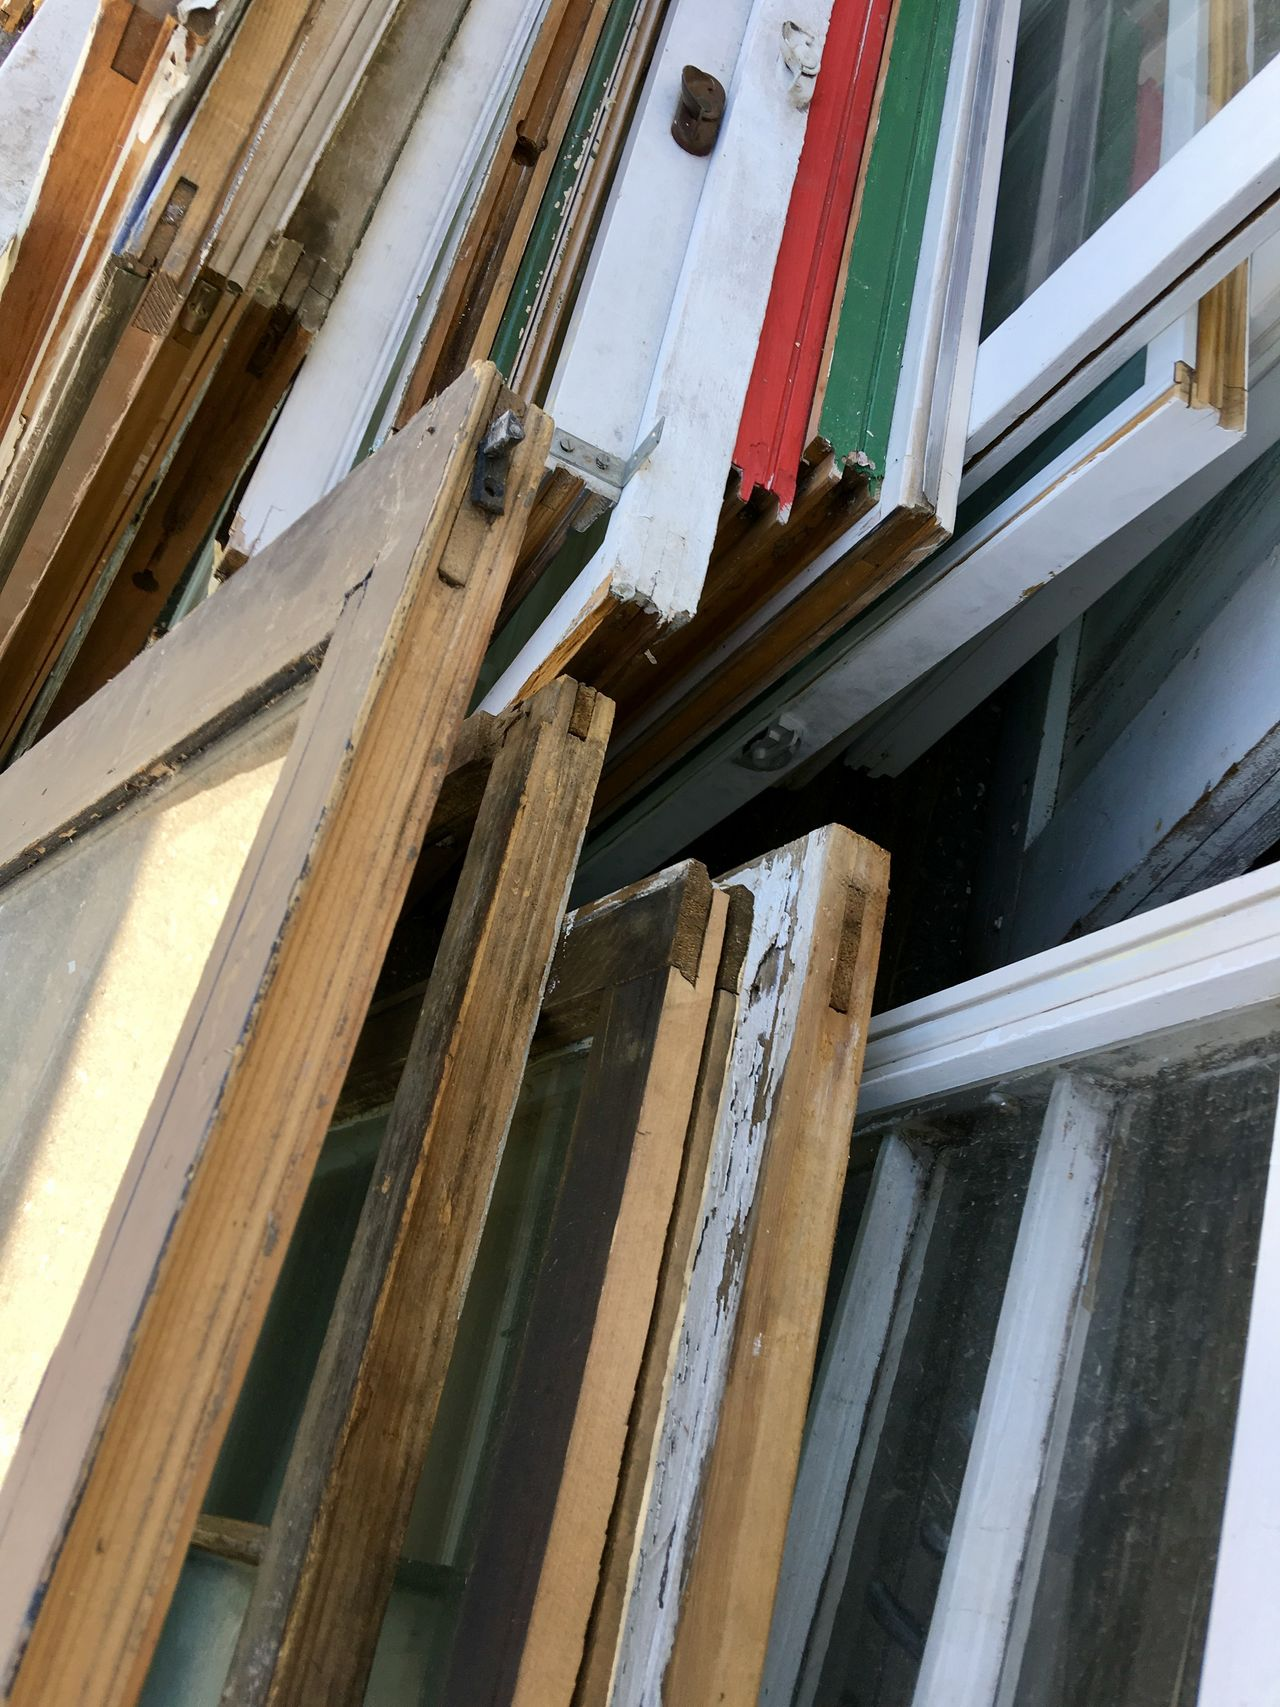 Day Indoors  Low Angle View No People Old Windows Windows Wood - Material